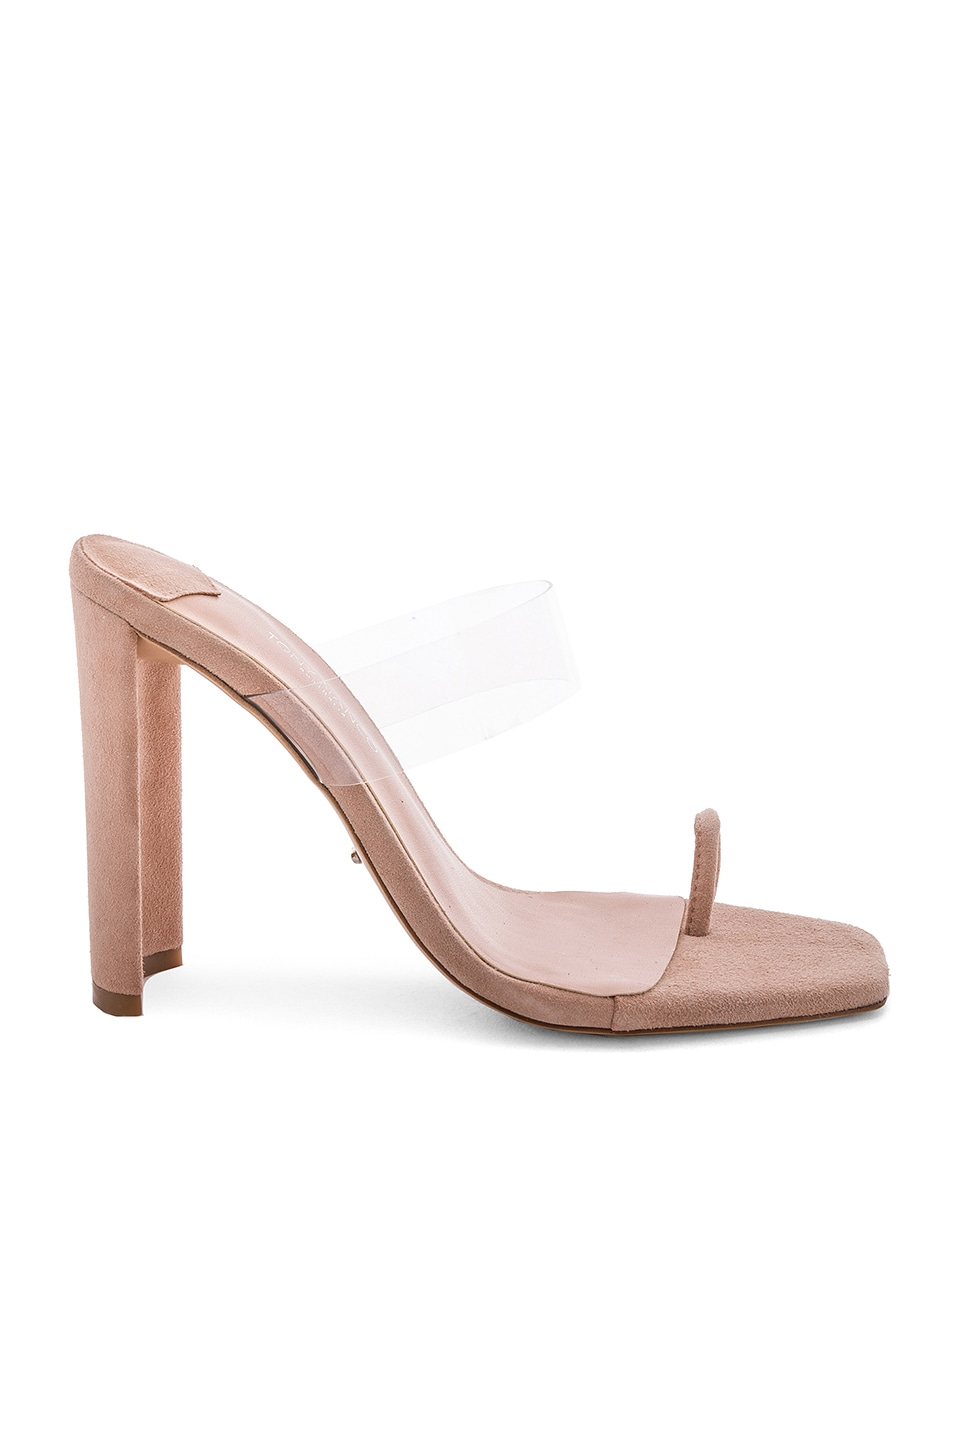 Tony Bianco X REVOLVE Sapphire Sandal in Blush Suede & Clear